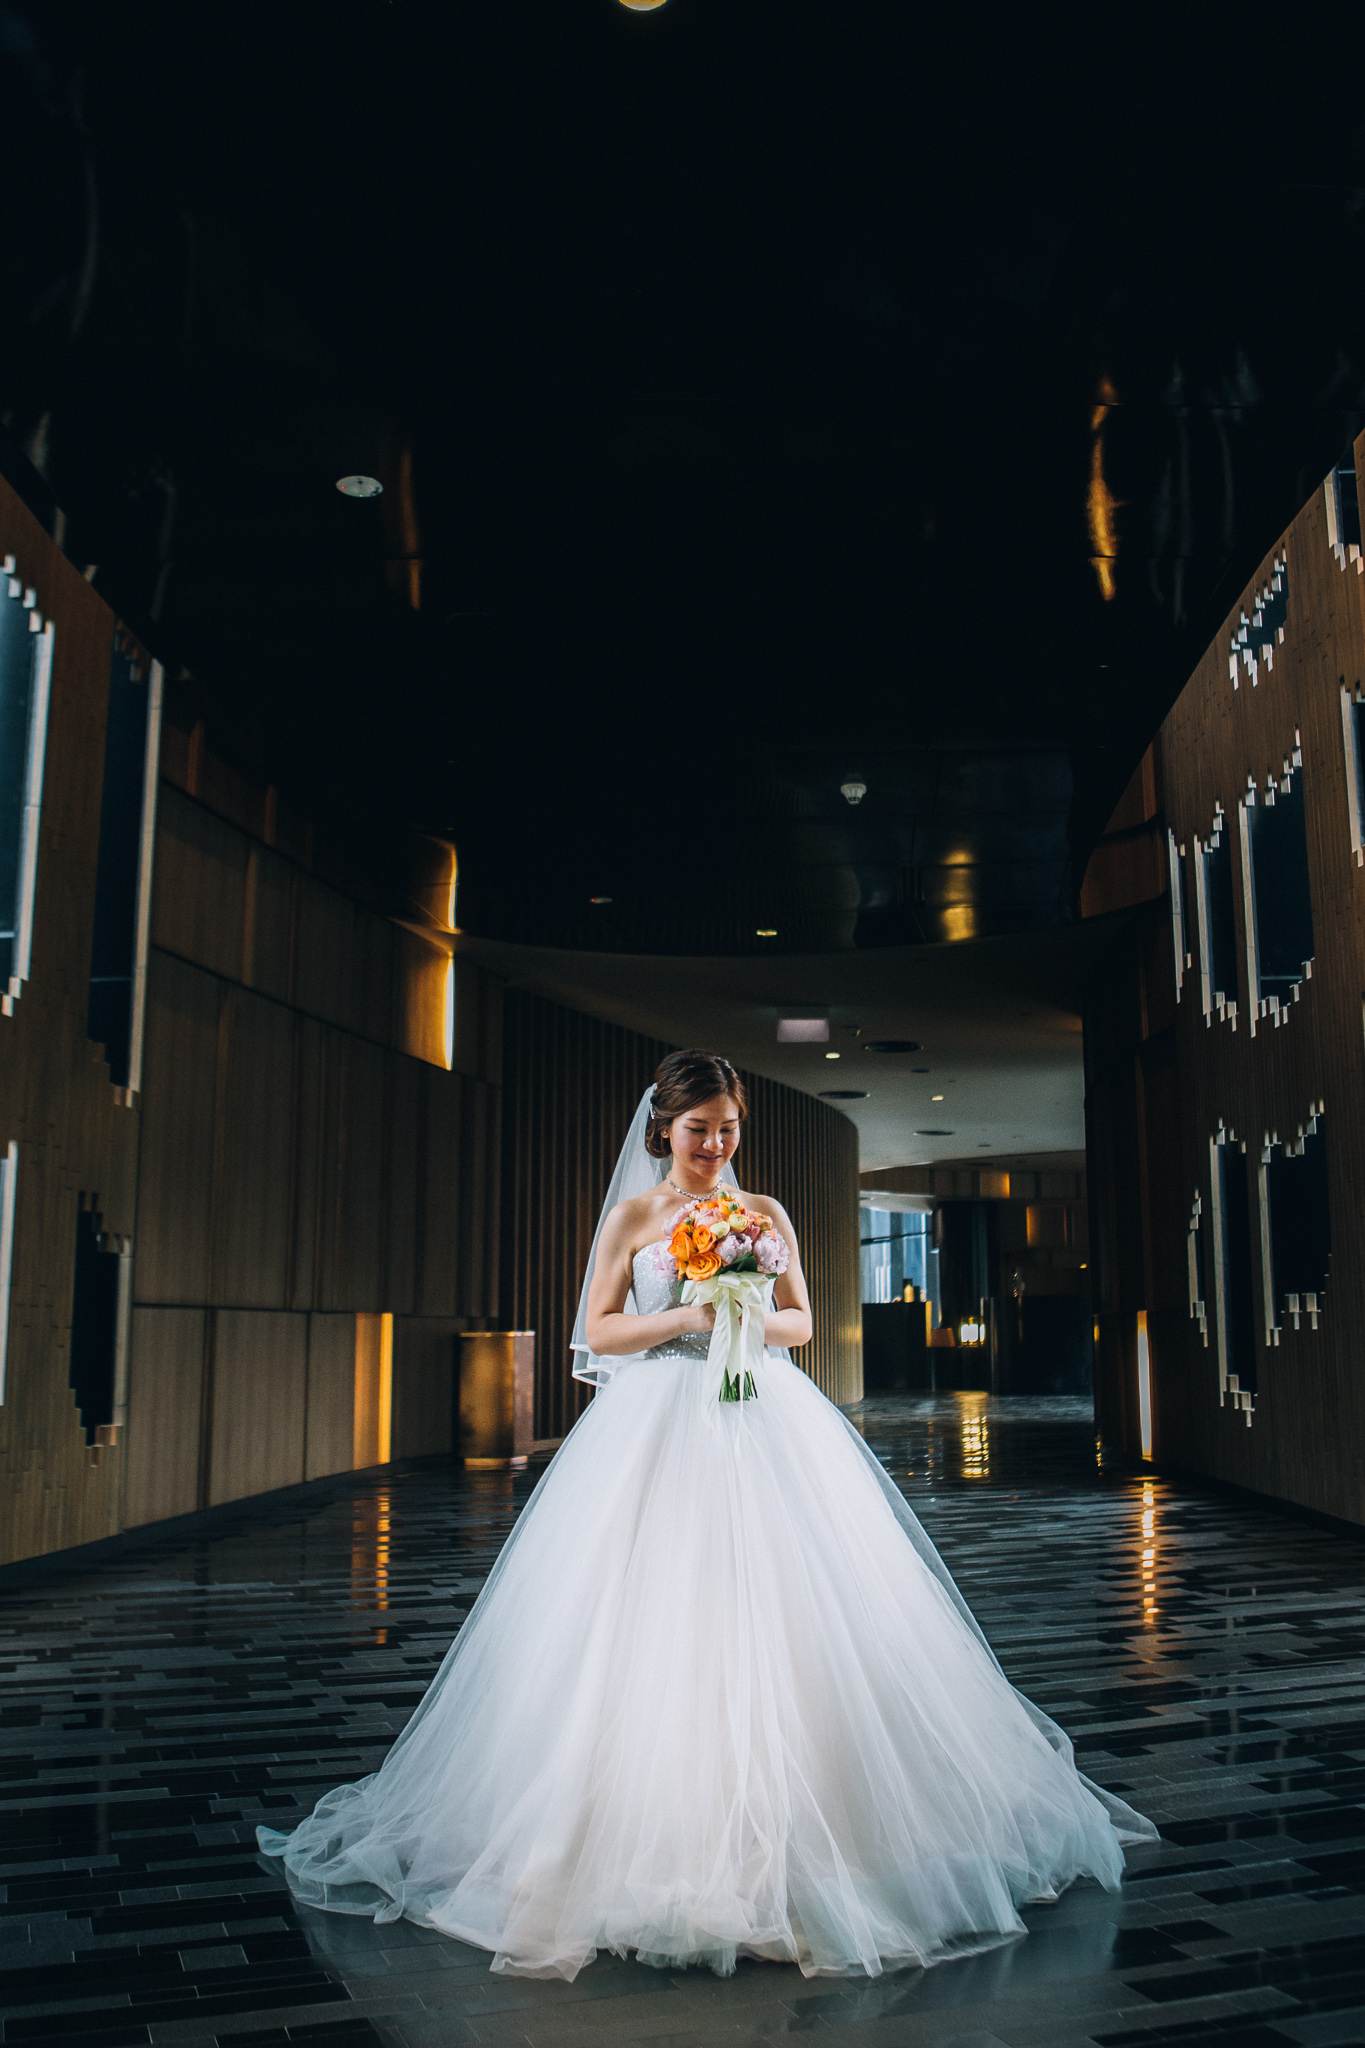 Juxtapose Pix - Wedding - Clarice & Zhengyong - changi airport crowne plaza 00035.jpg